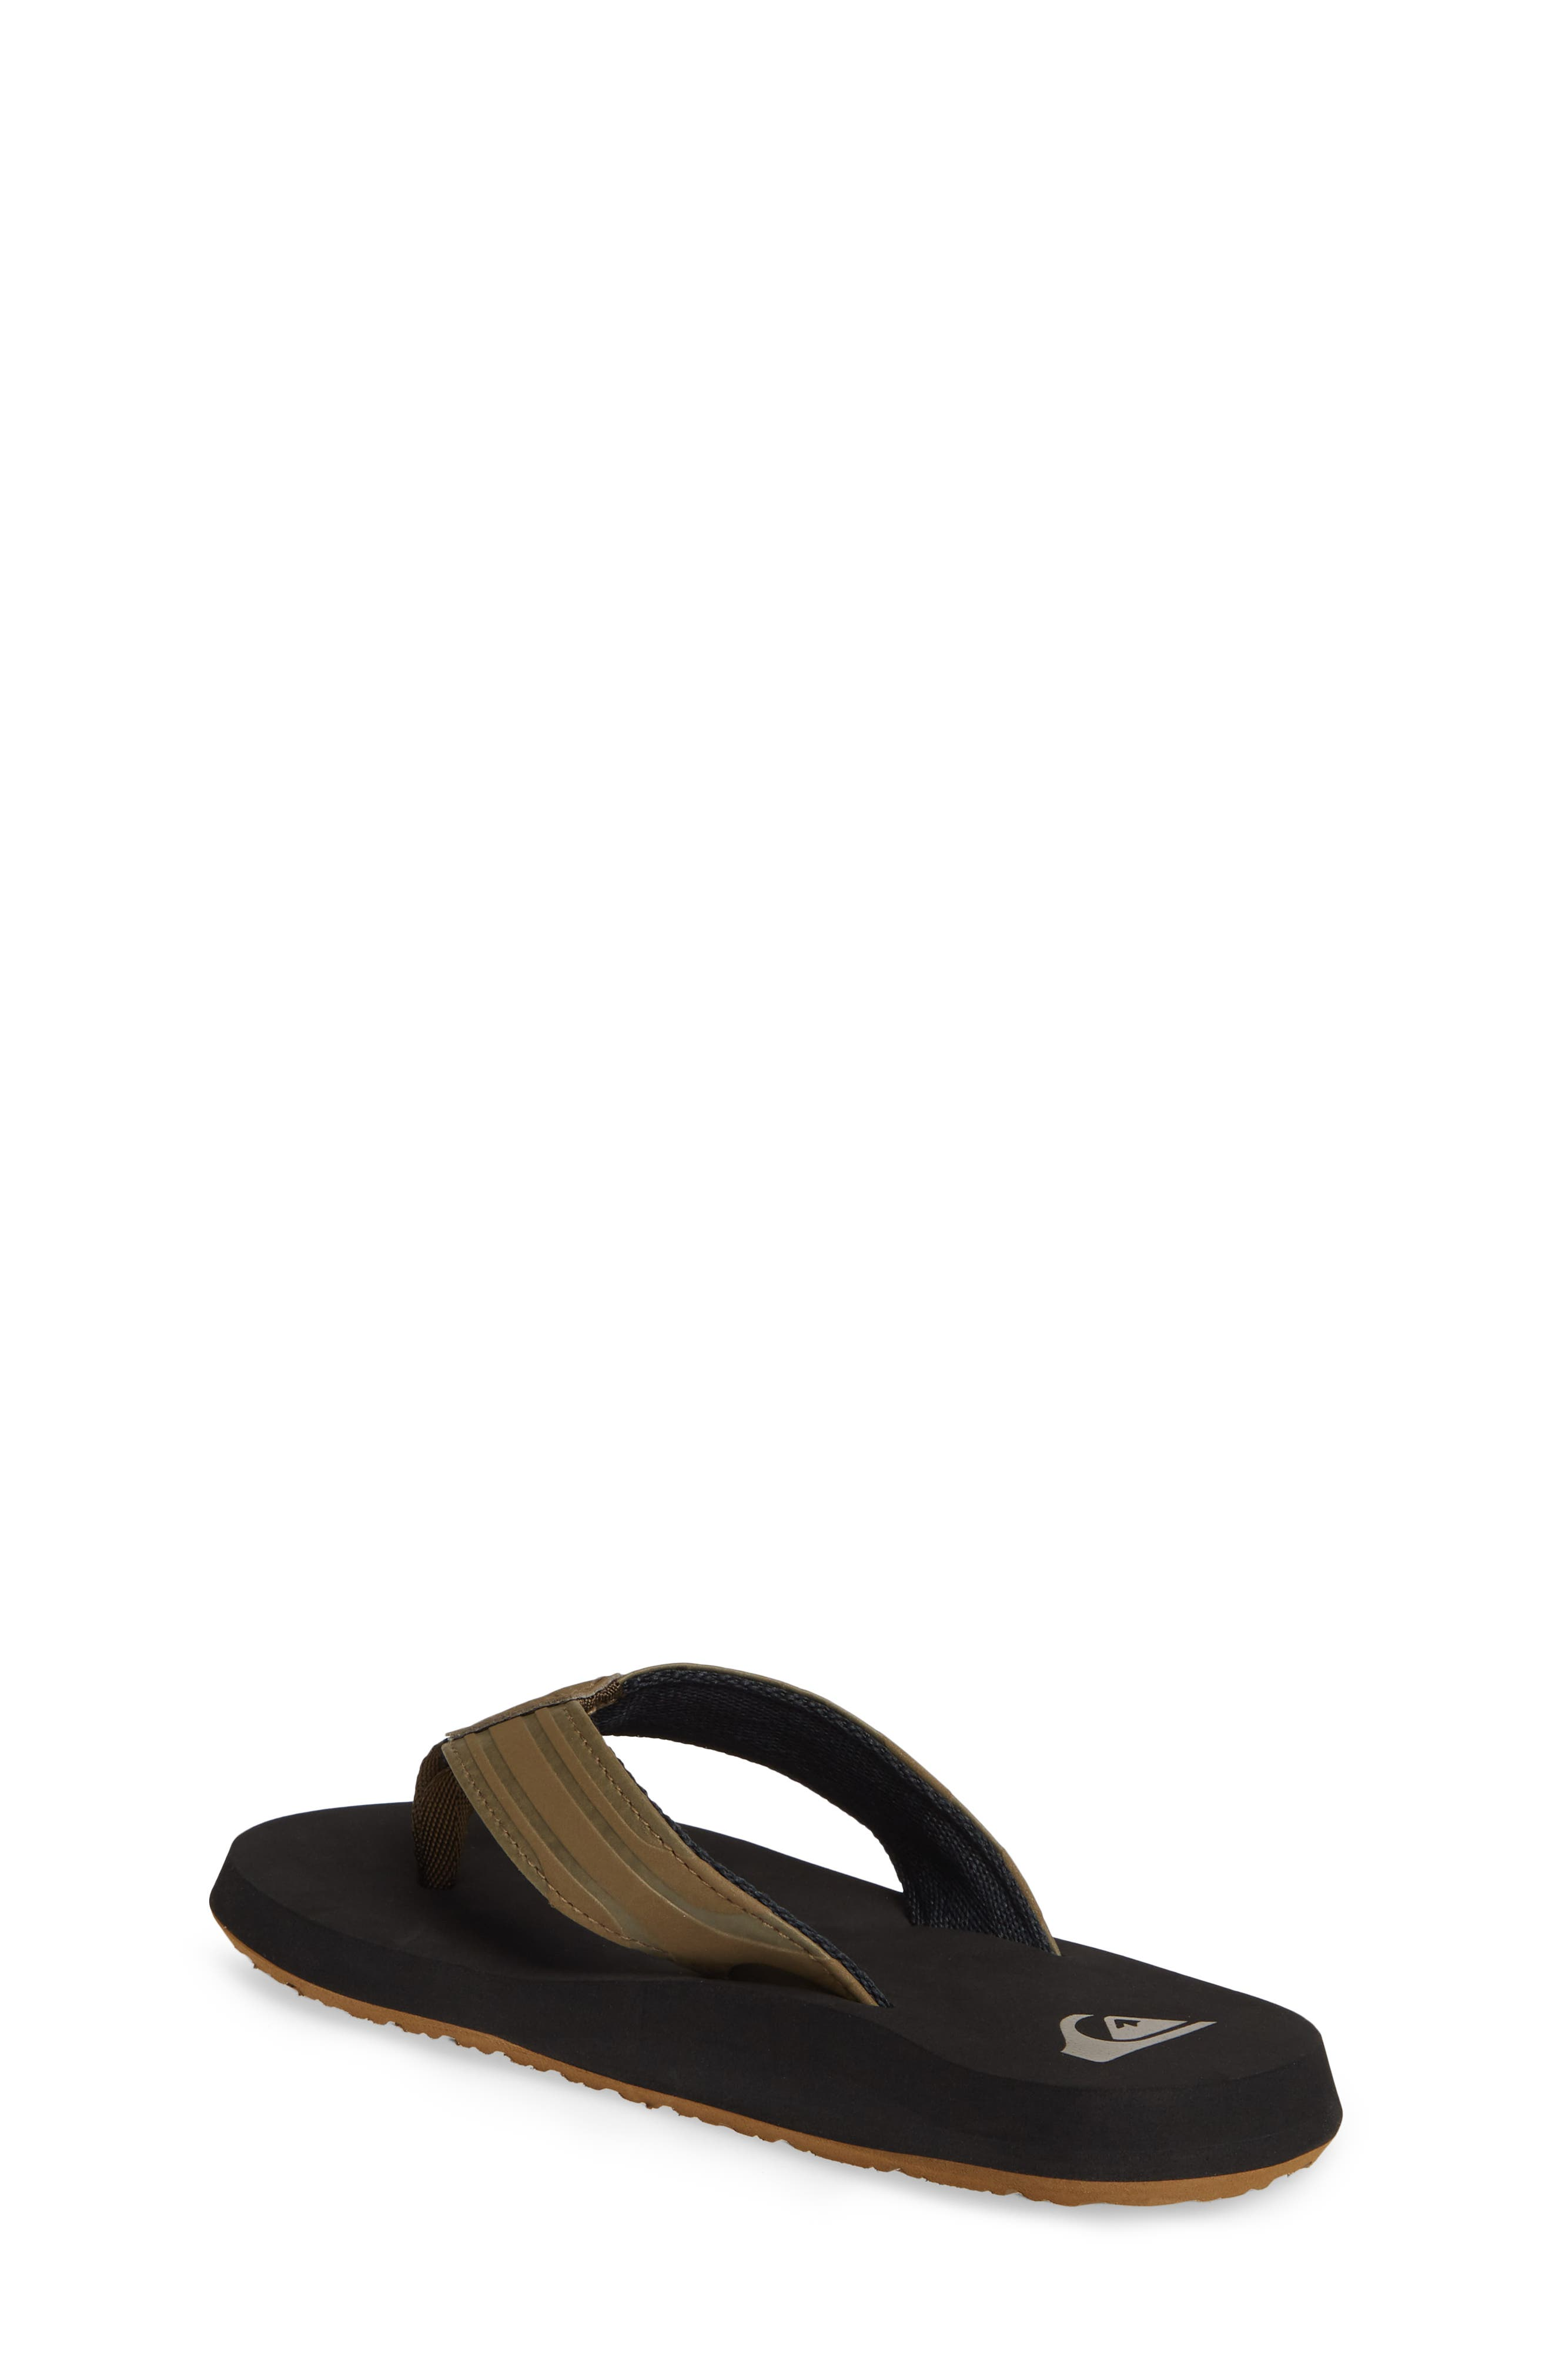 QUIKSILVER, Monkey Wrench Flip Flop, Alternate thumbnail 2, color, TAN